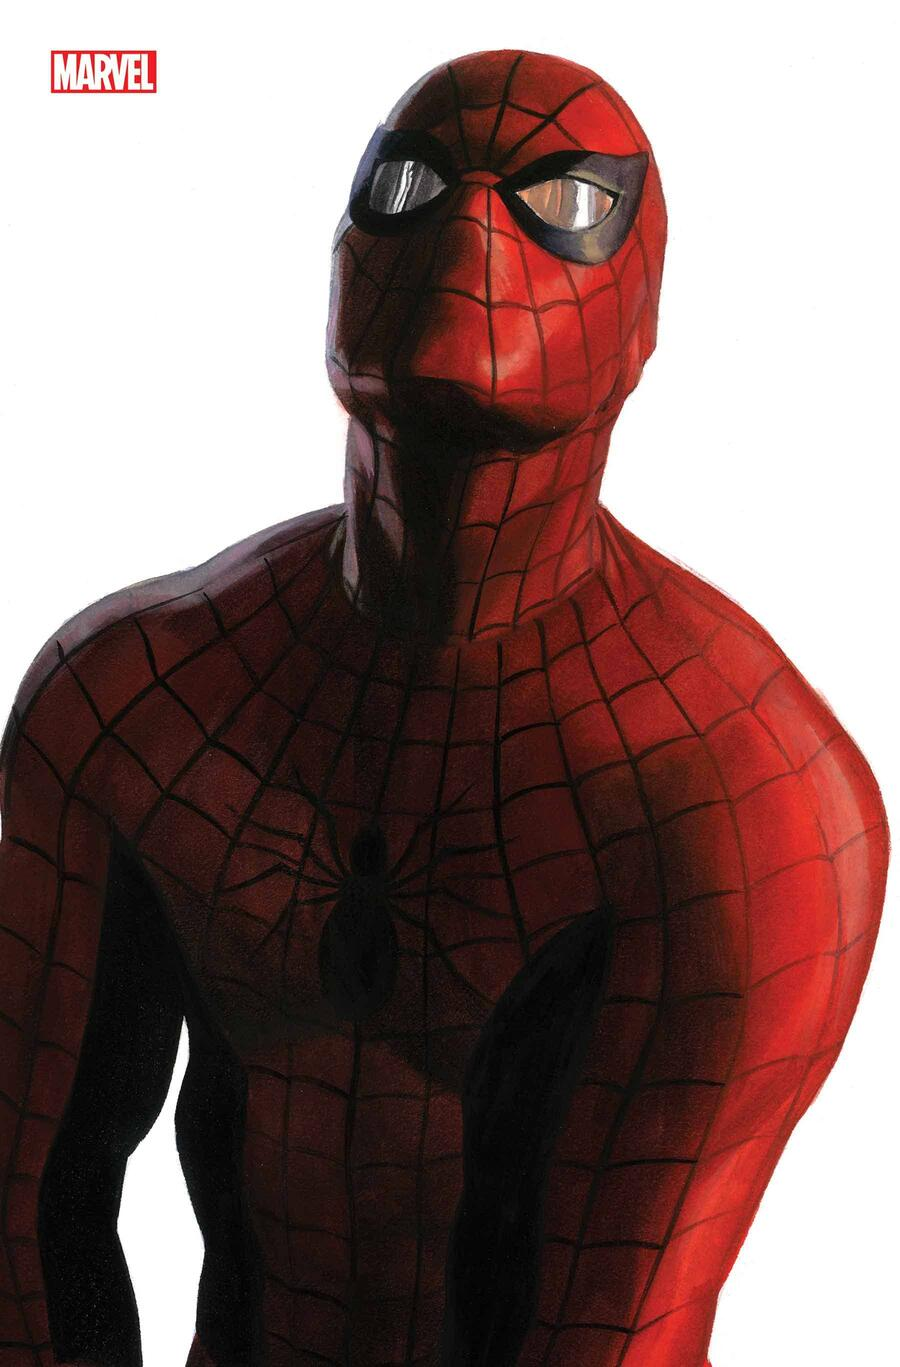 AMAZING SPIDER-MAN #50 variant cover by Alex Ross